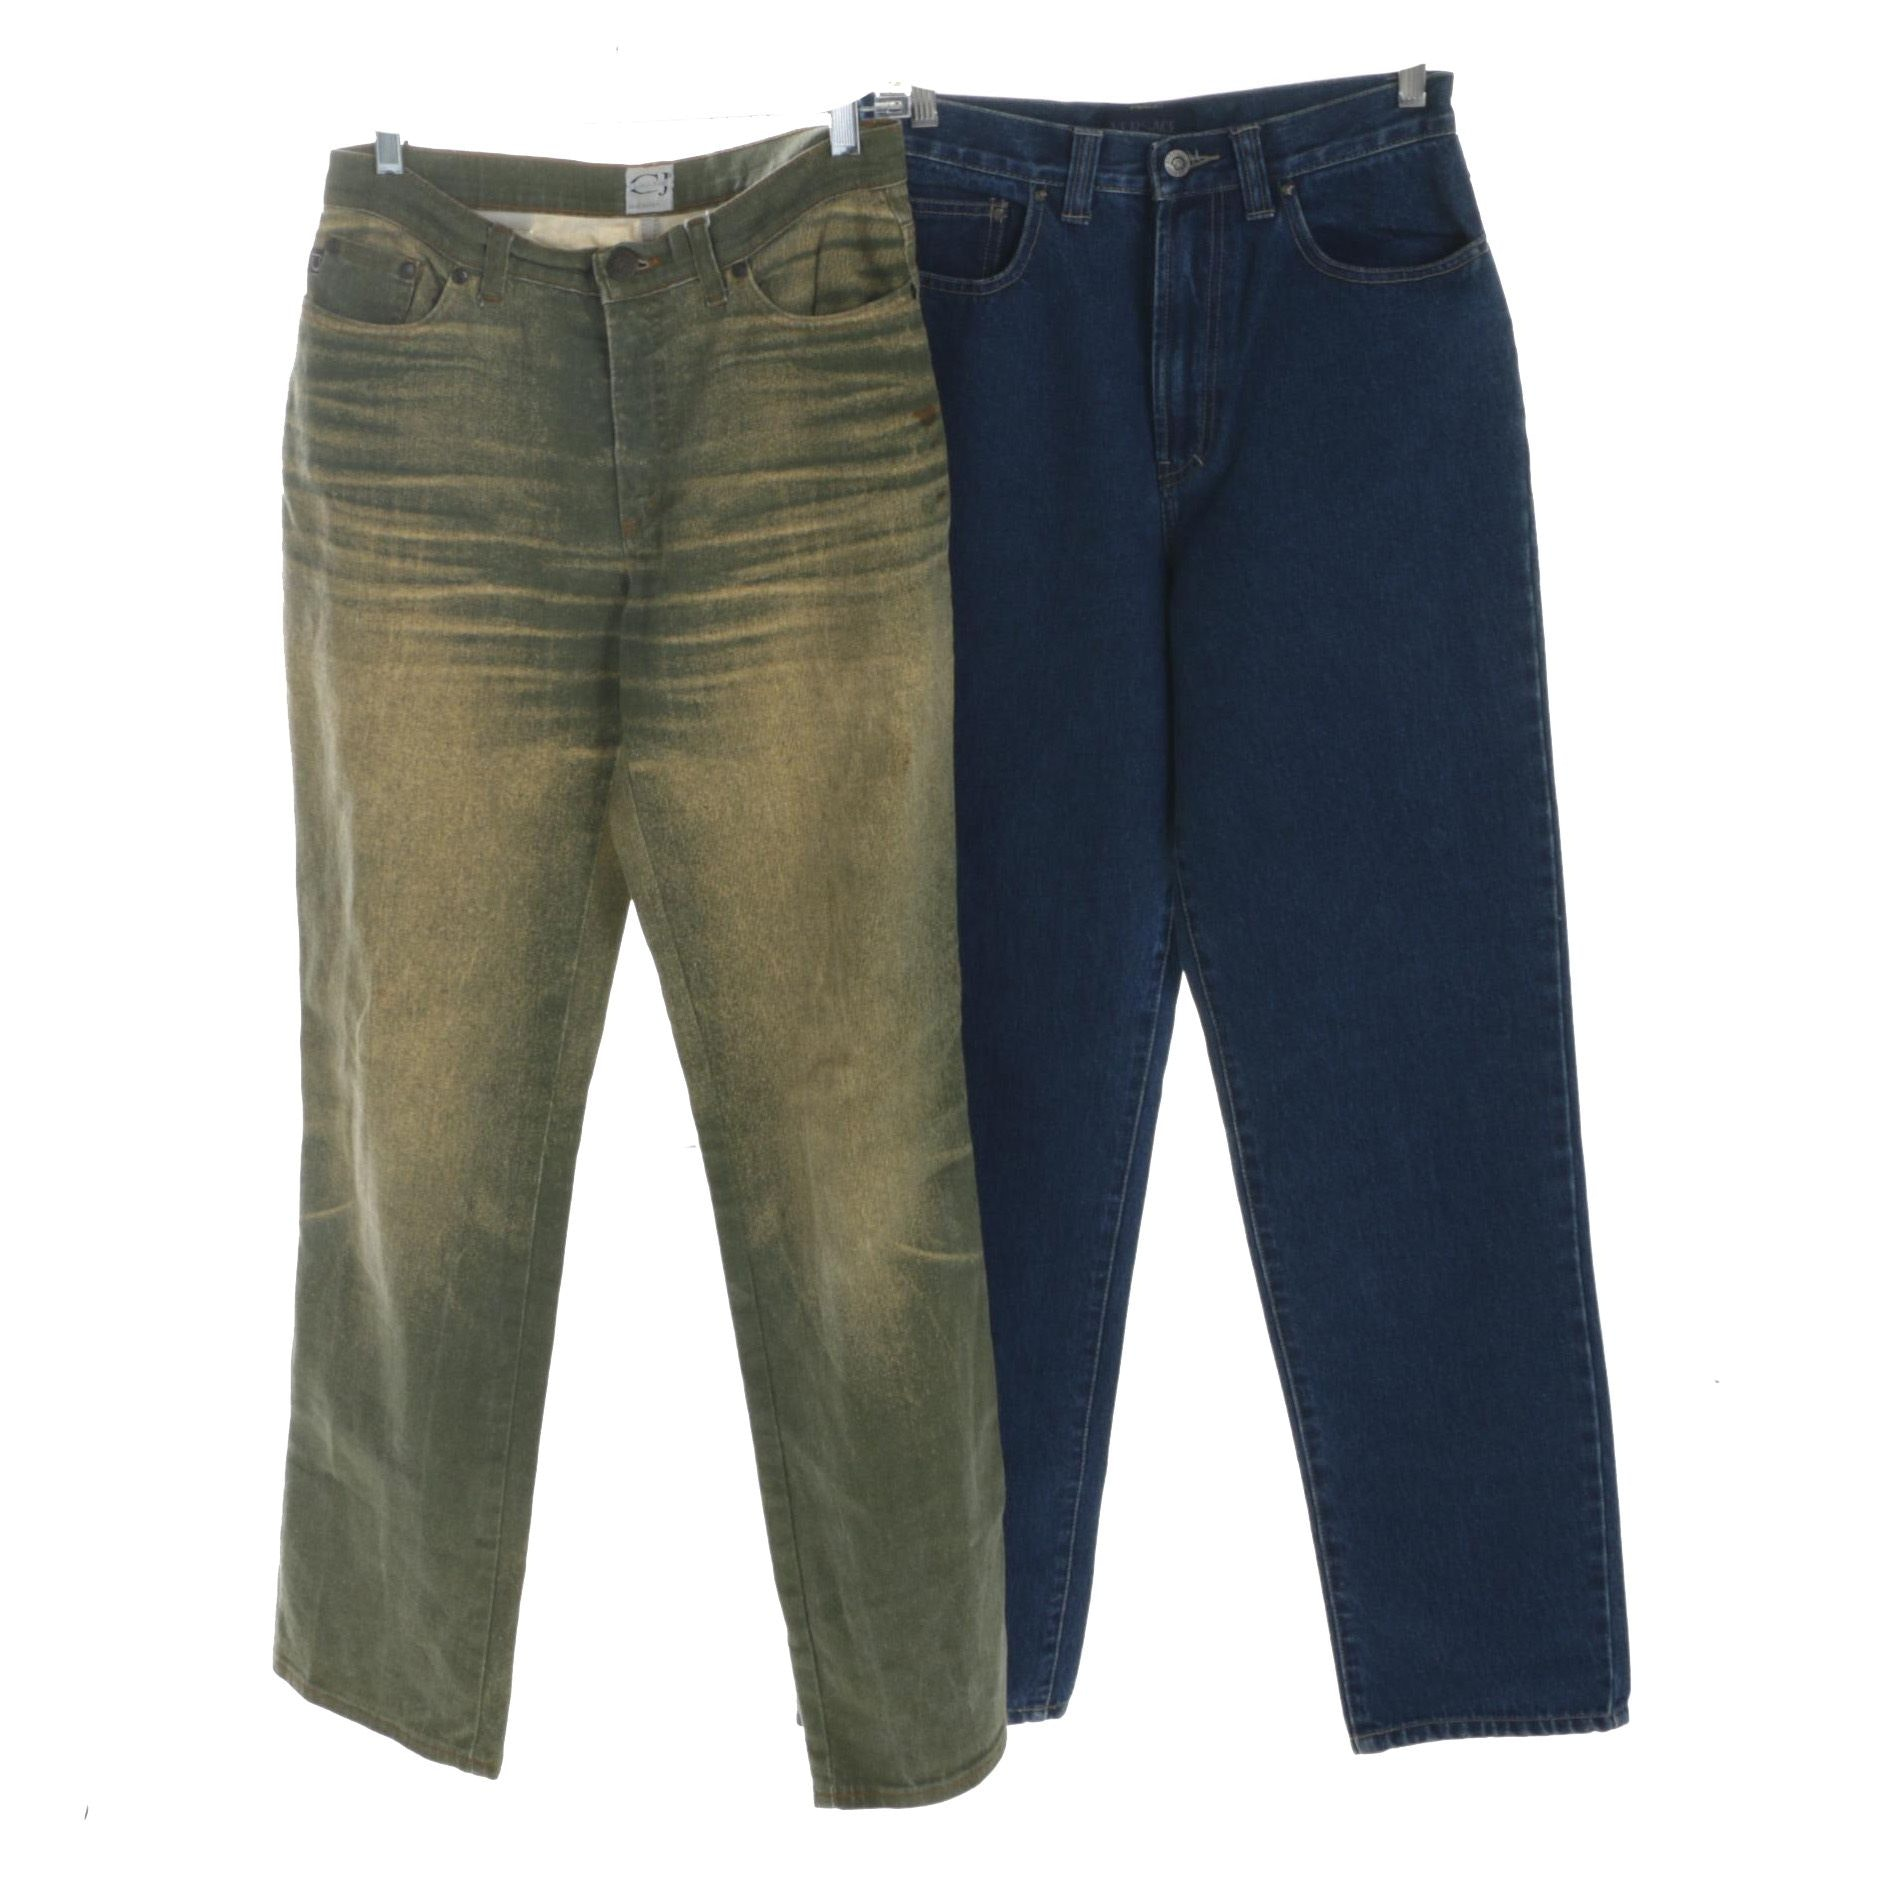 Women's Versace Jeans Couture and Cavalli Jeans Denim Pants